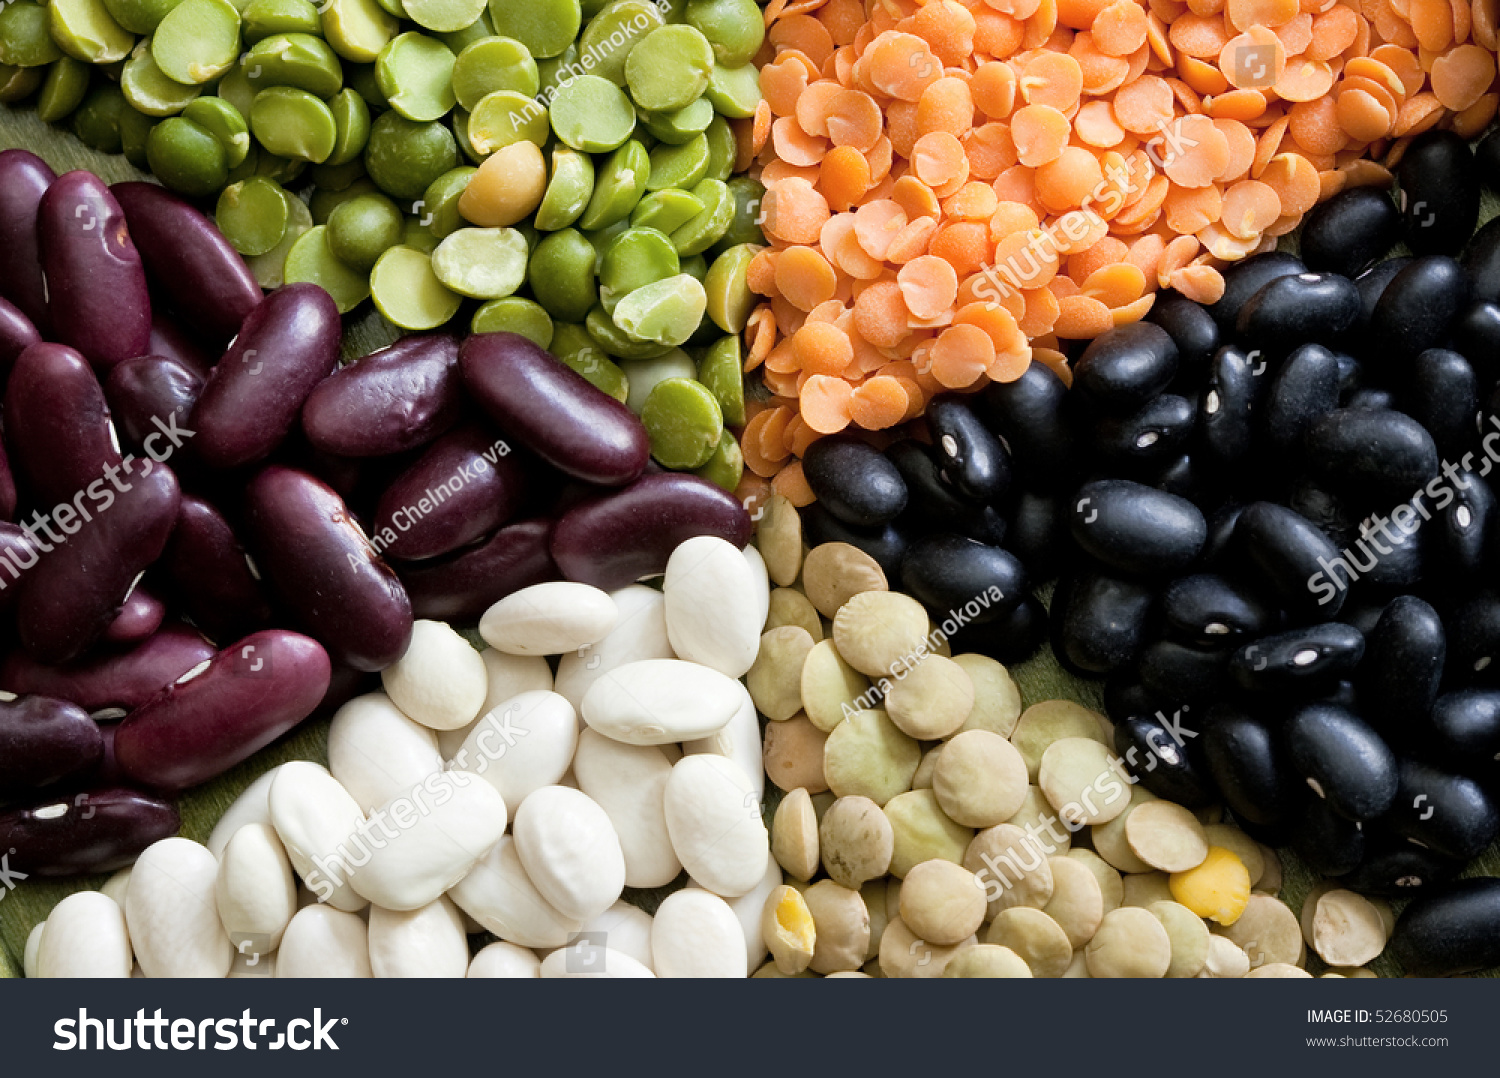 how to cook mixed beans and lentils